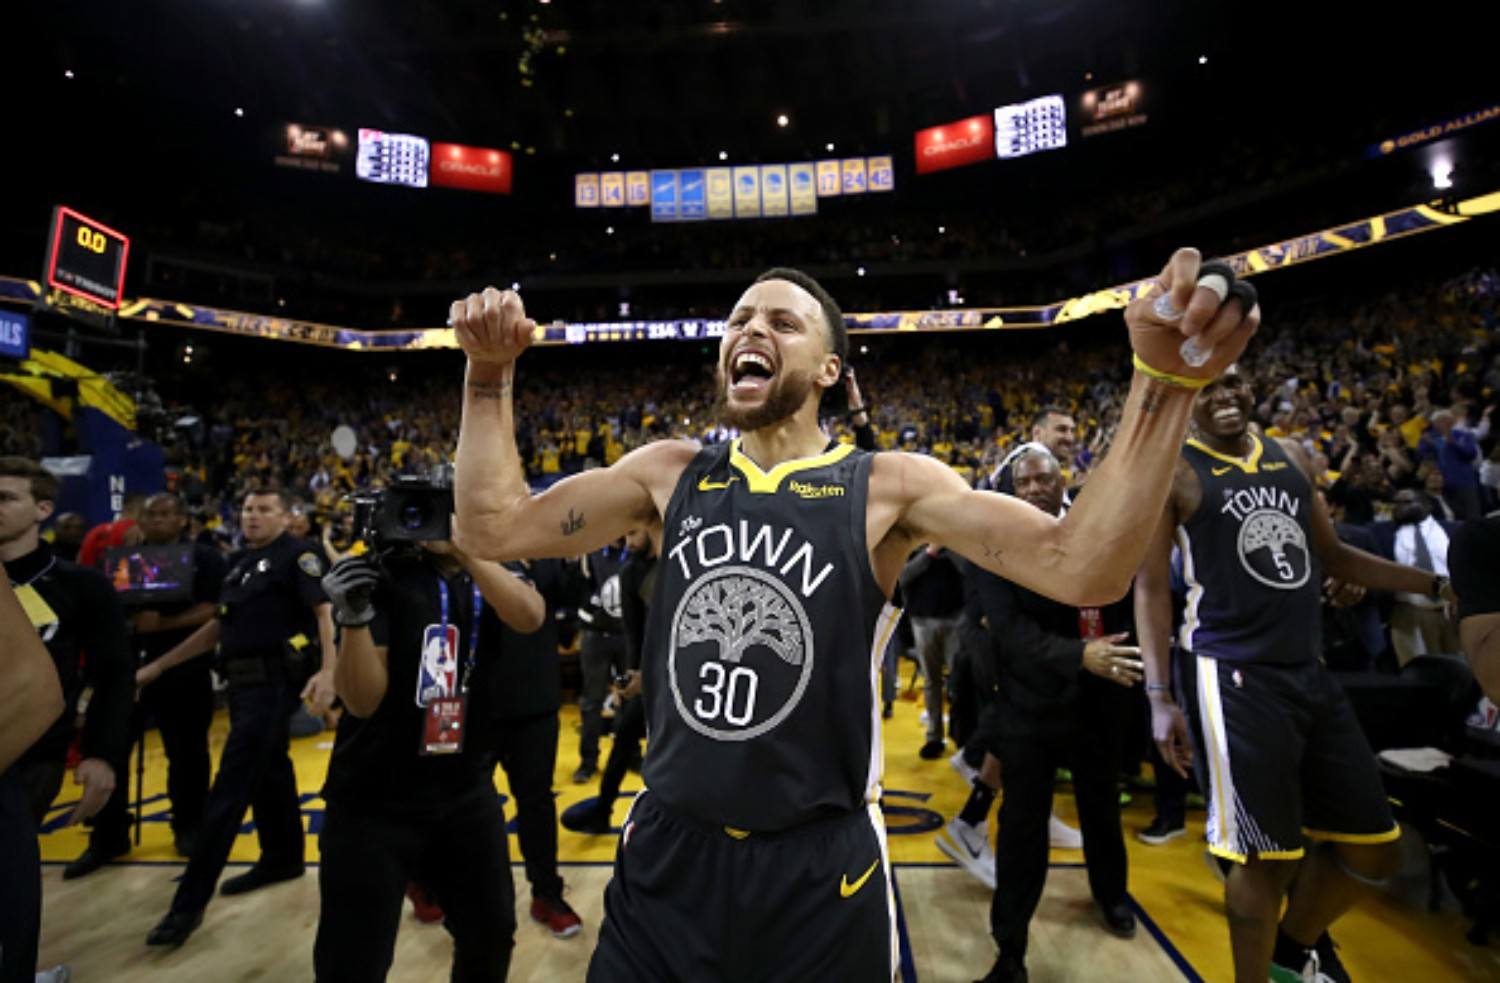 Stephen Curry has blossomed into an NBA superstar during his career